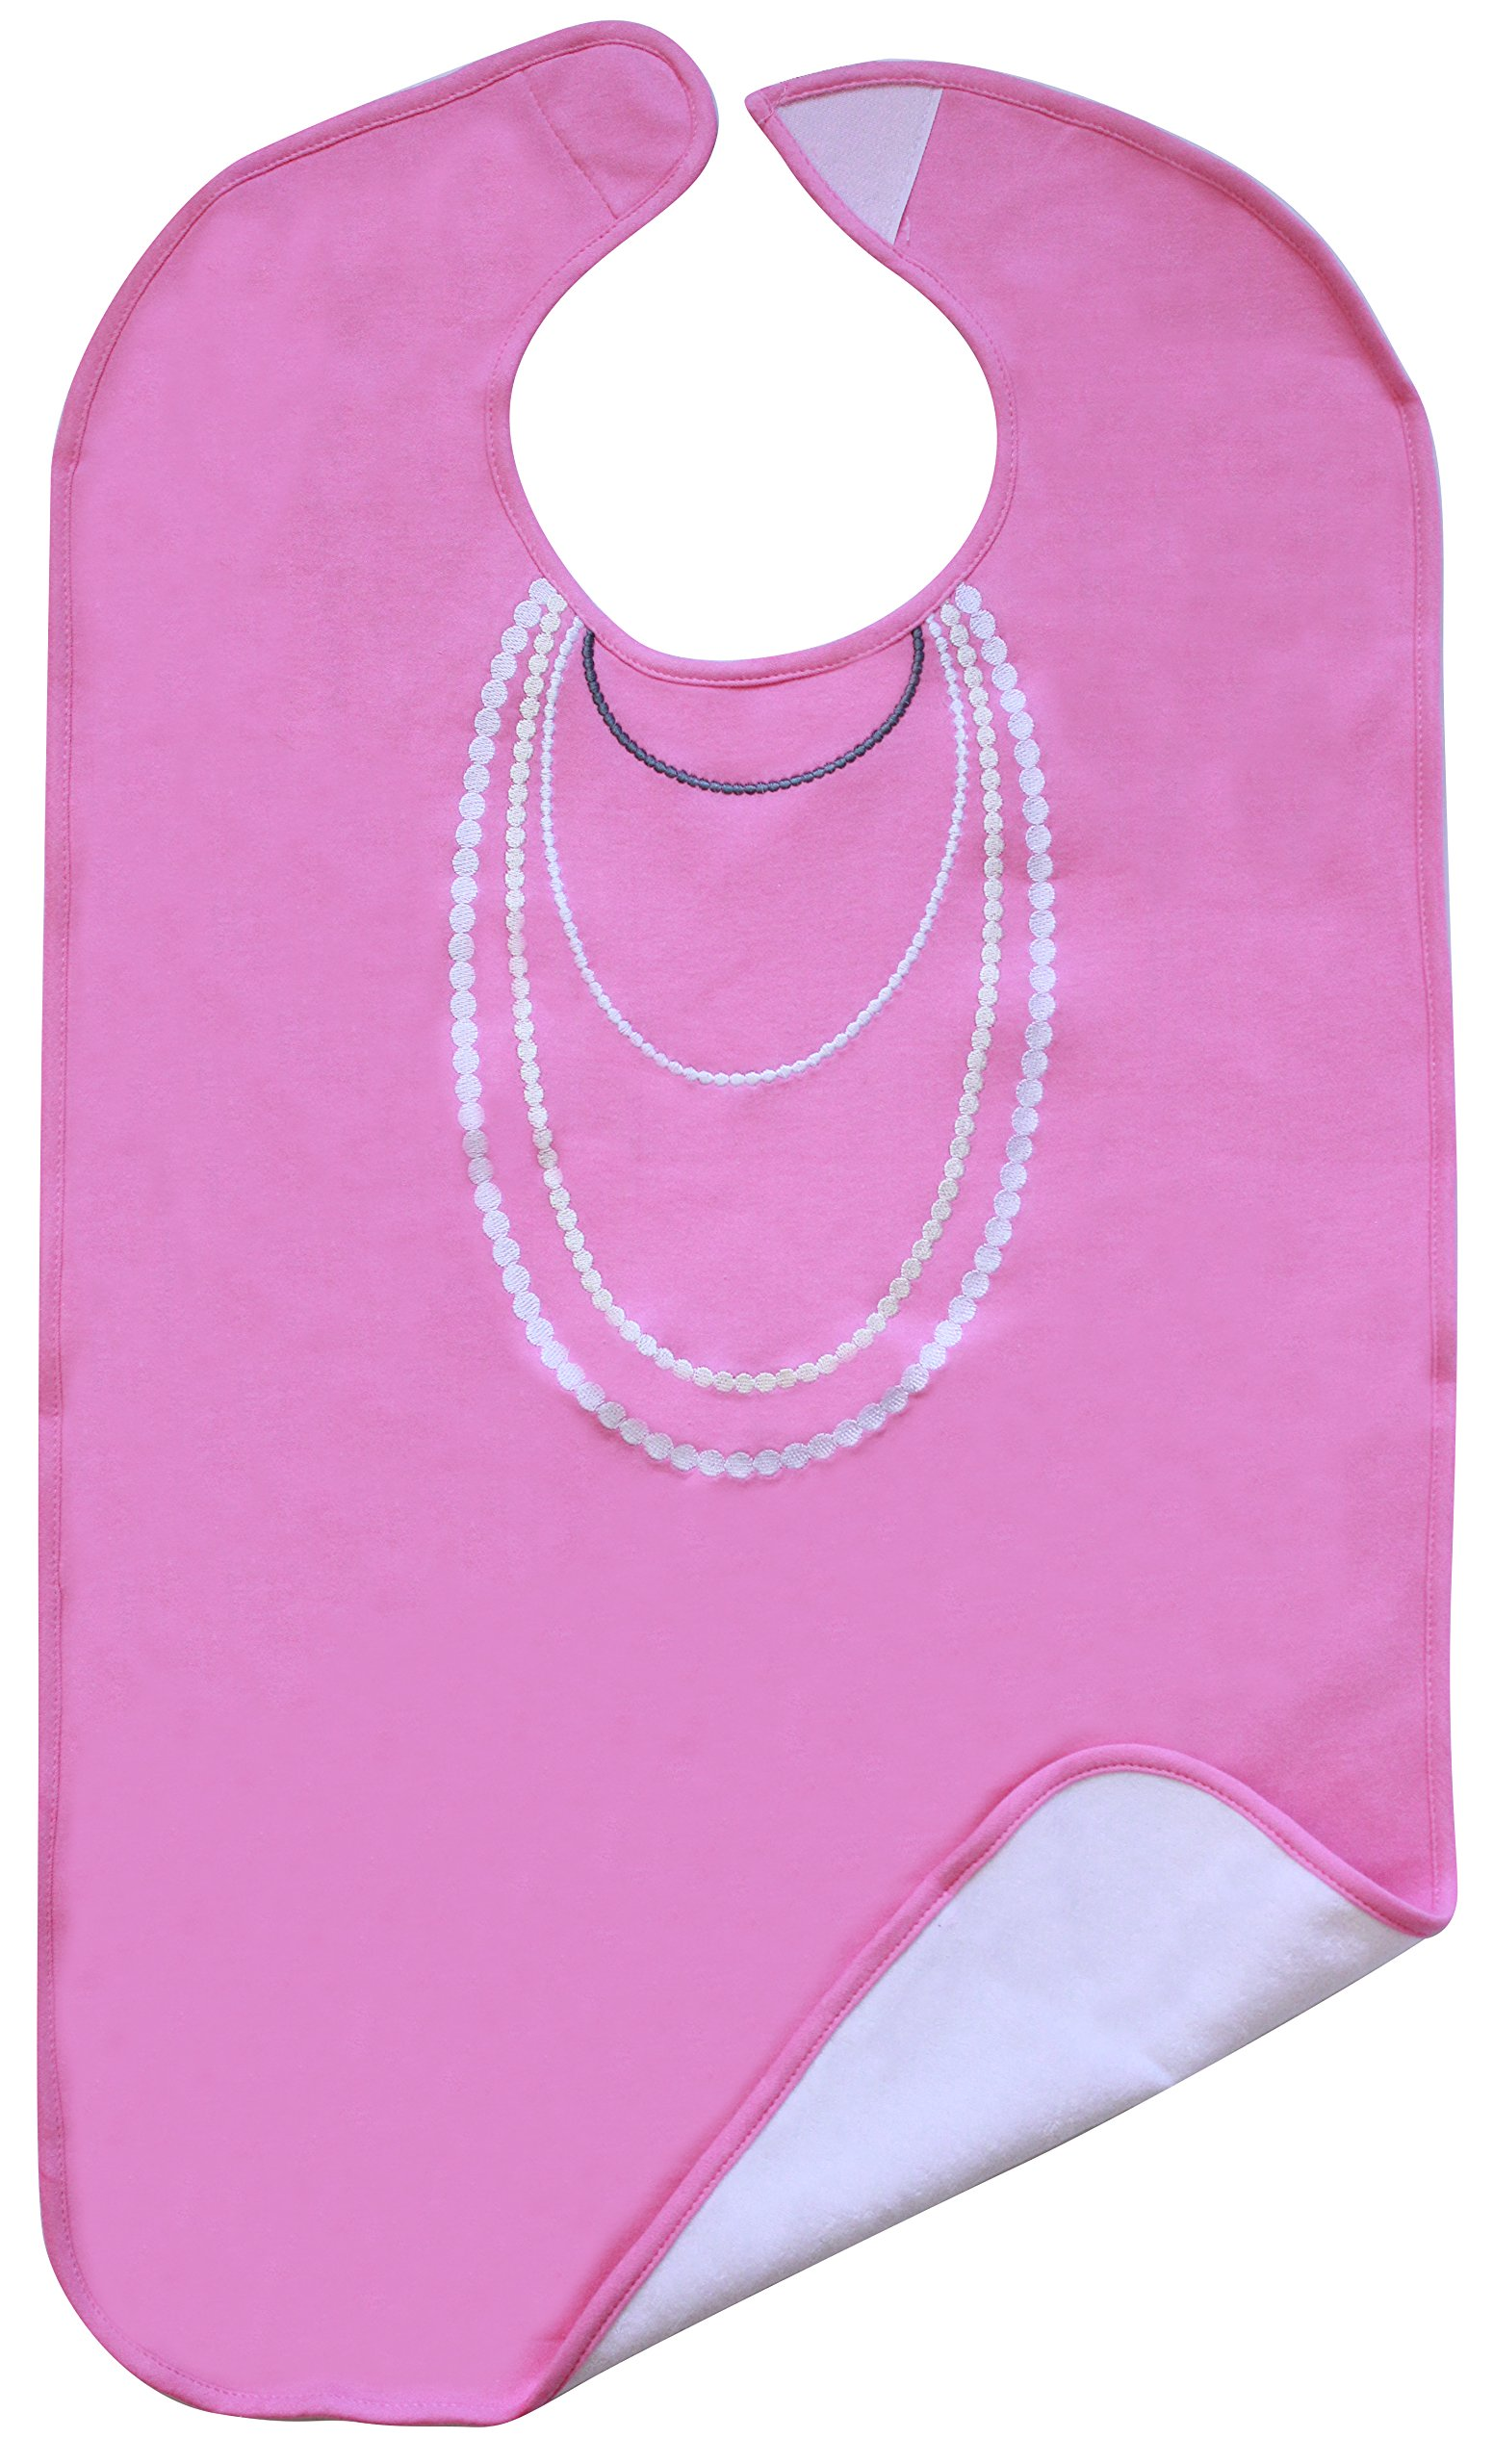 Ladies Adult Bib, Pink with White Pearl Embroidery, Frenchie Mini Couture